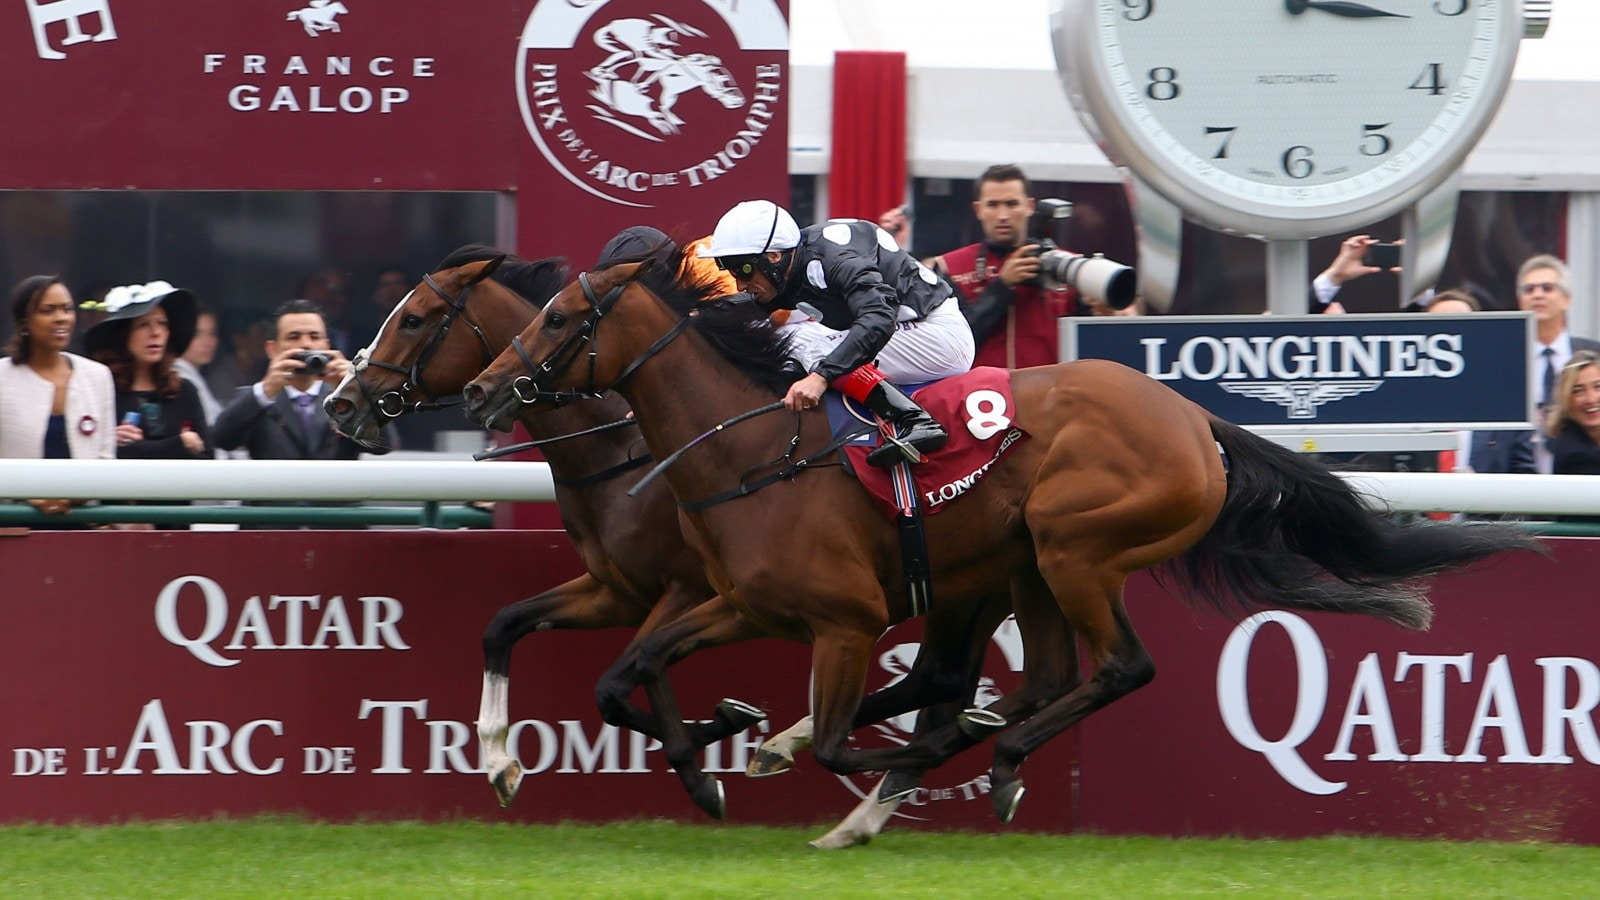 Finish line of the 2015 Prix de l'Opéra Longines with Covert Love ridden by Patrick Joseph Smullen and Jazzi Top ridden by Lanfranco Dettori.